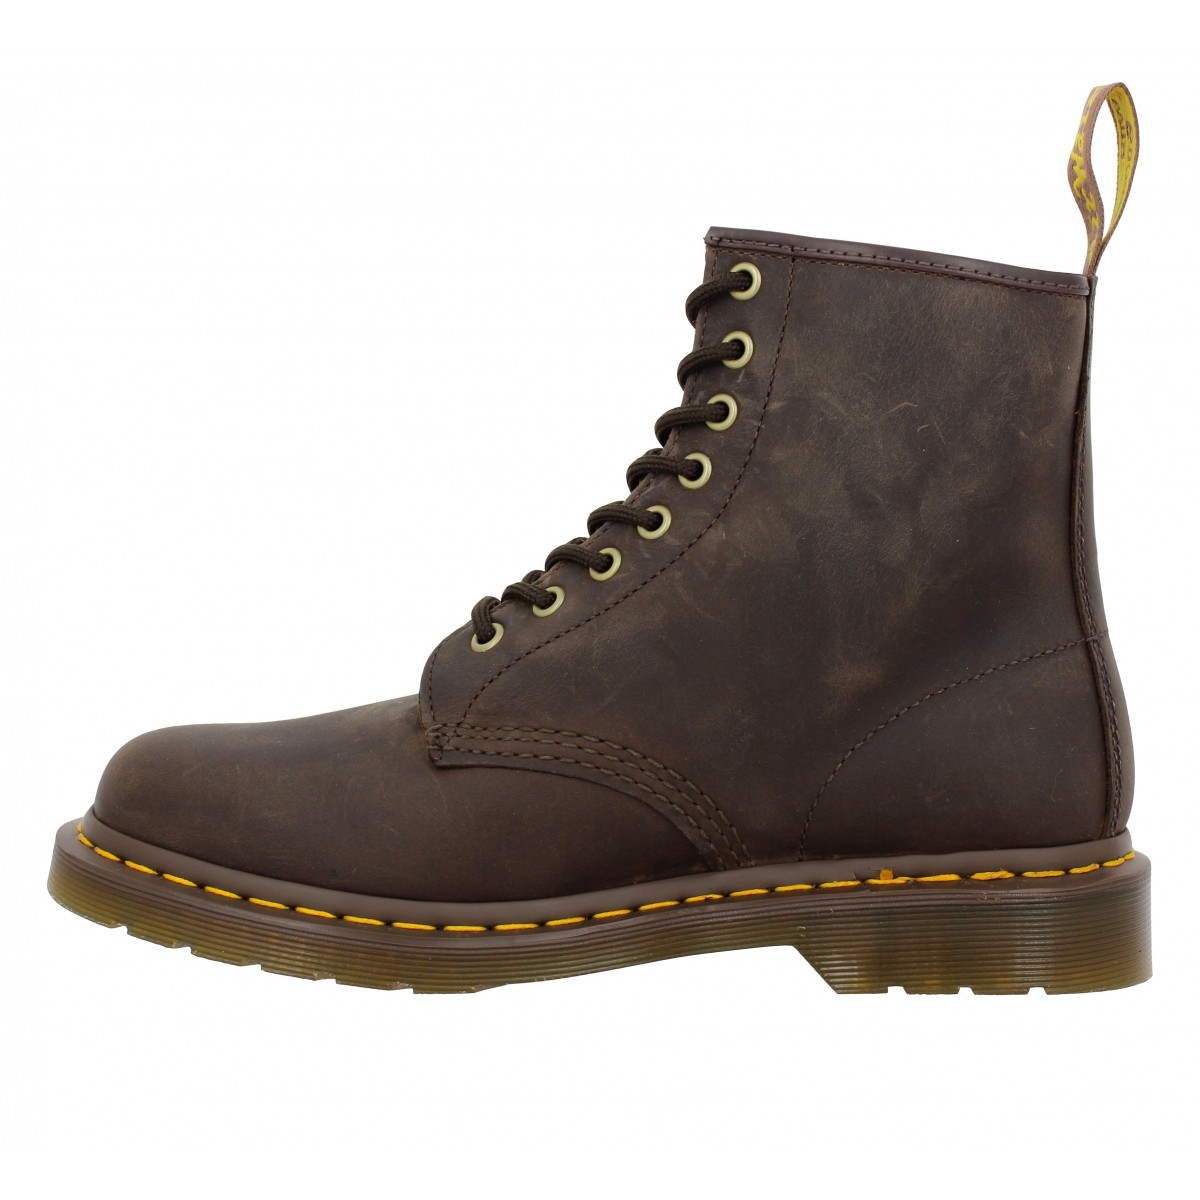 dr martens 1460 cuir gras femme brun fonce fanny chaussures. Black Bedroom Furniture Sets. Home Design Ideas